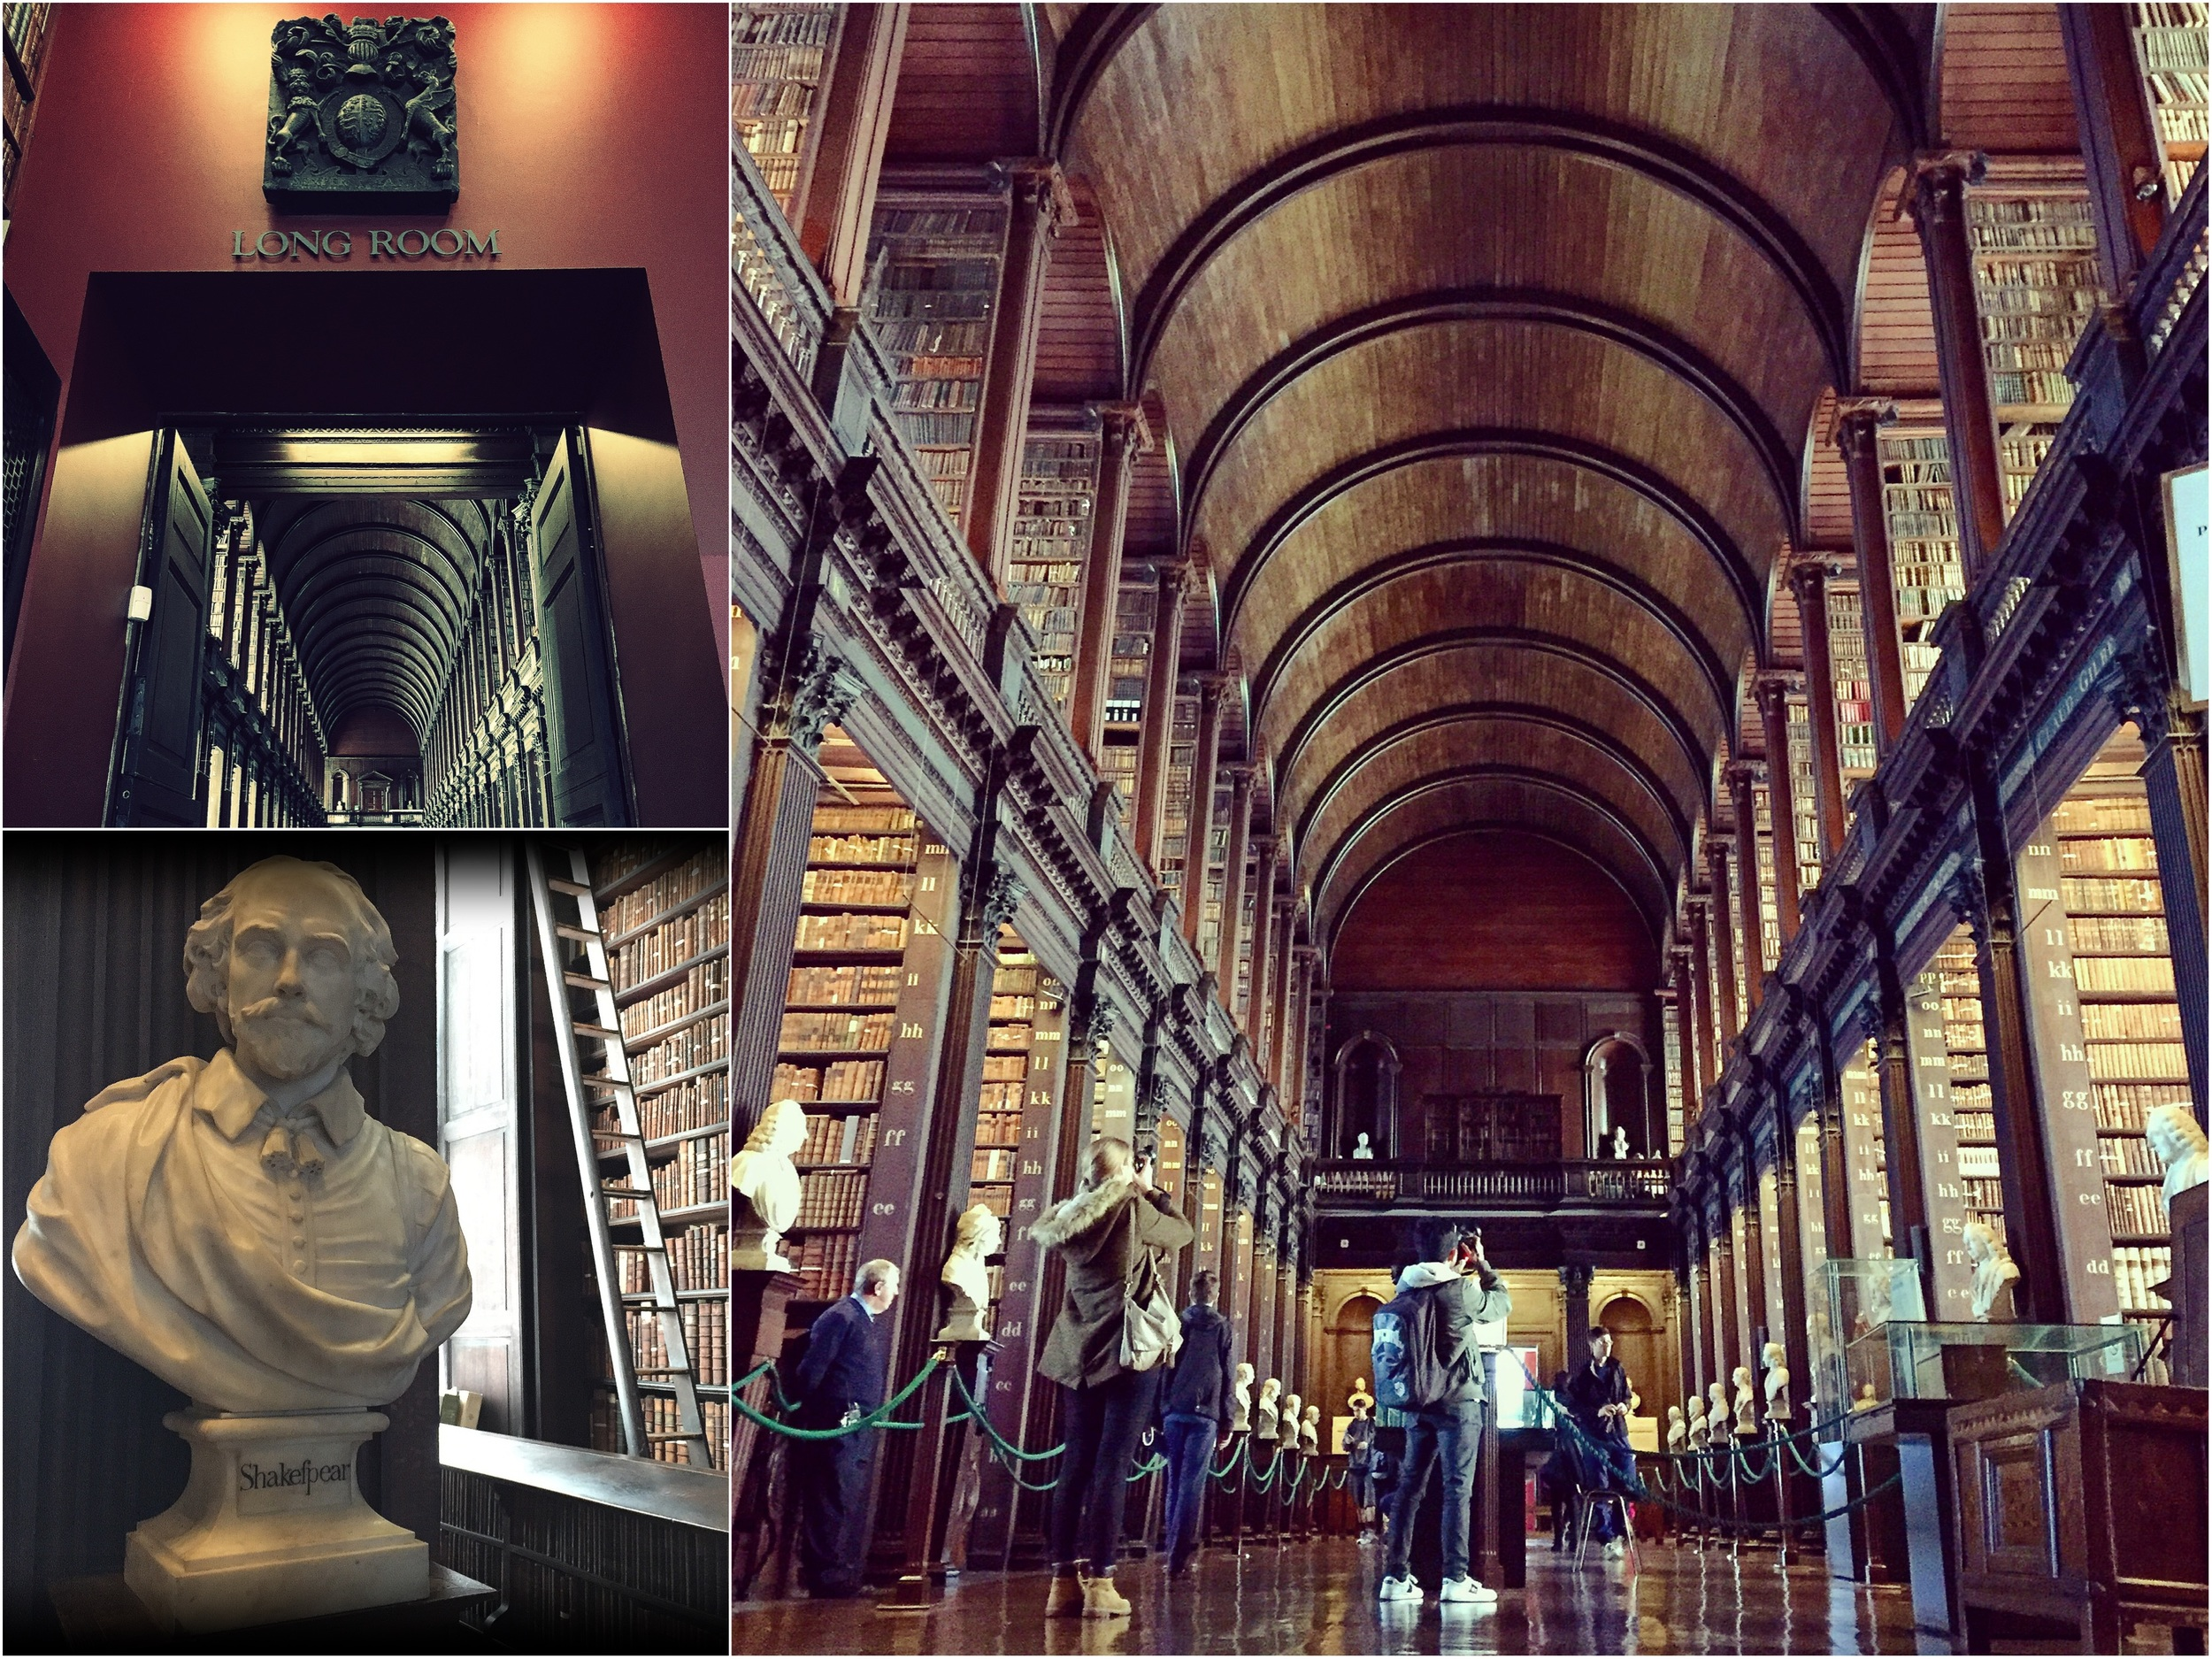 Checking out some old tomes at Trinity College Library's gorgeous Long Room.